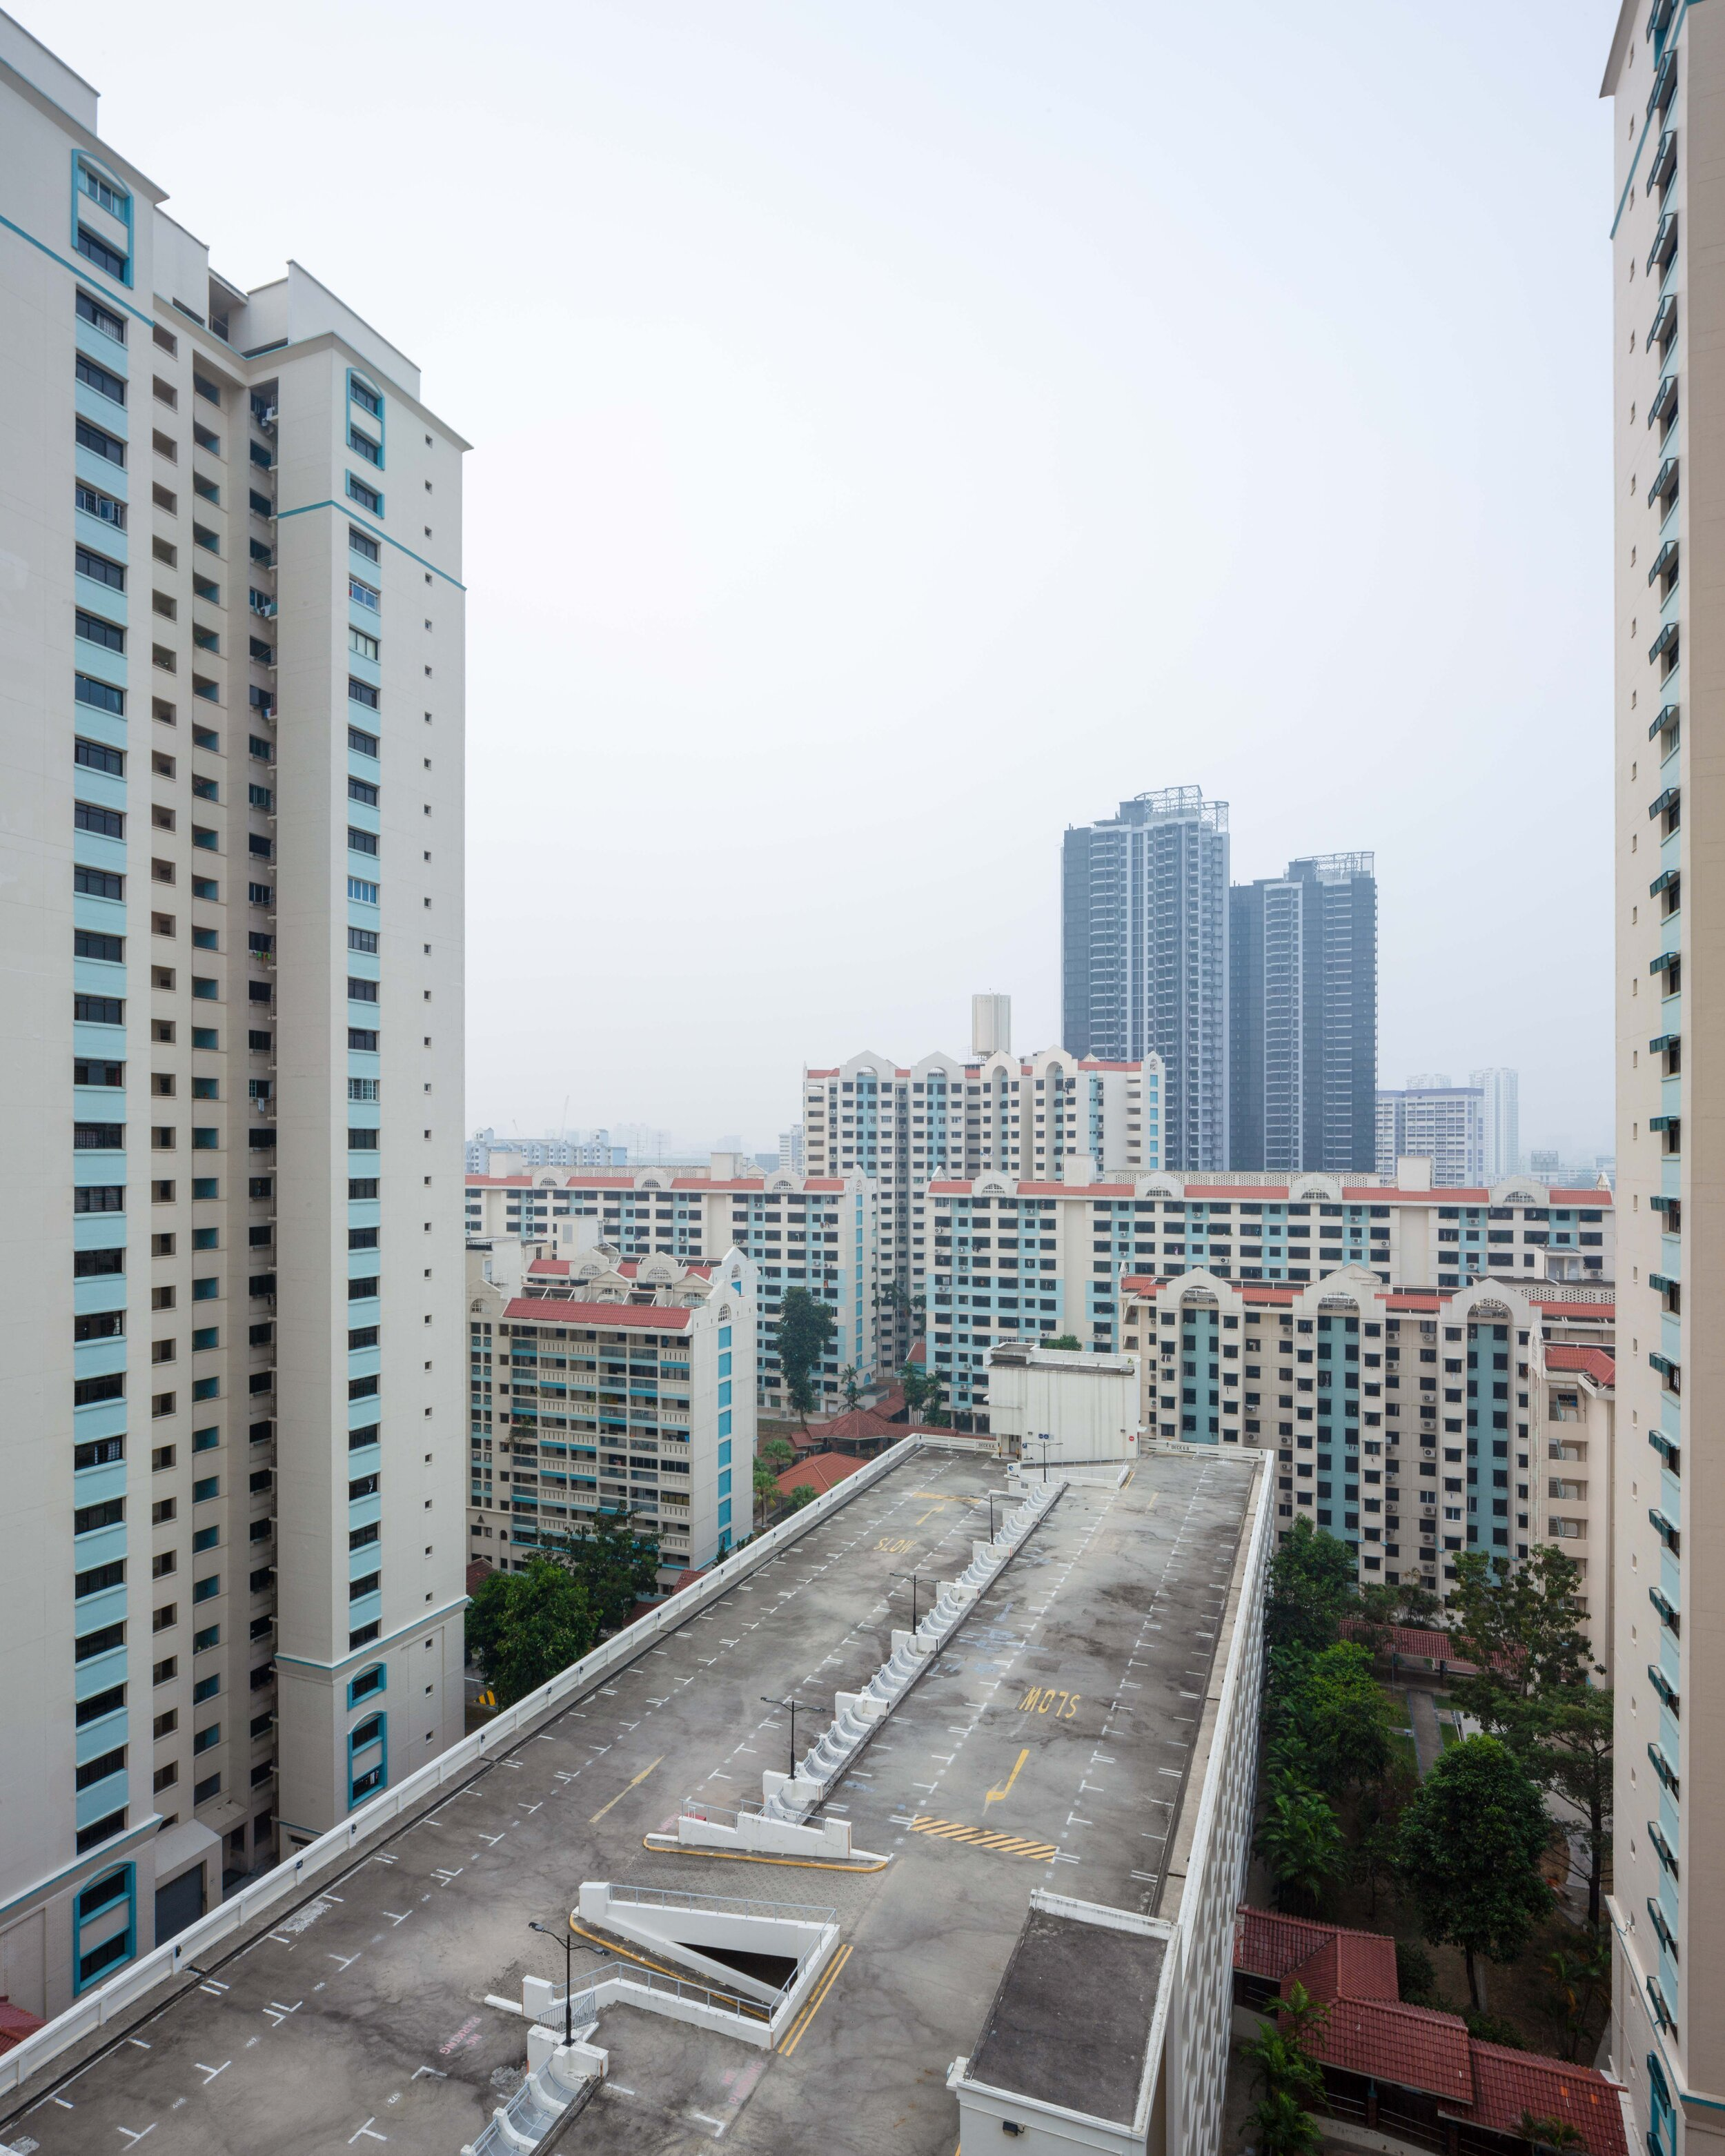 62B Lorong 4 Toa Payoh 190918 082, image by Andrew Campbell Nelson.jpg